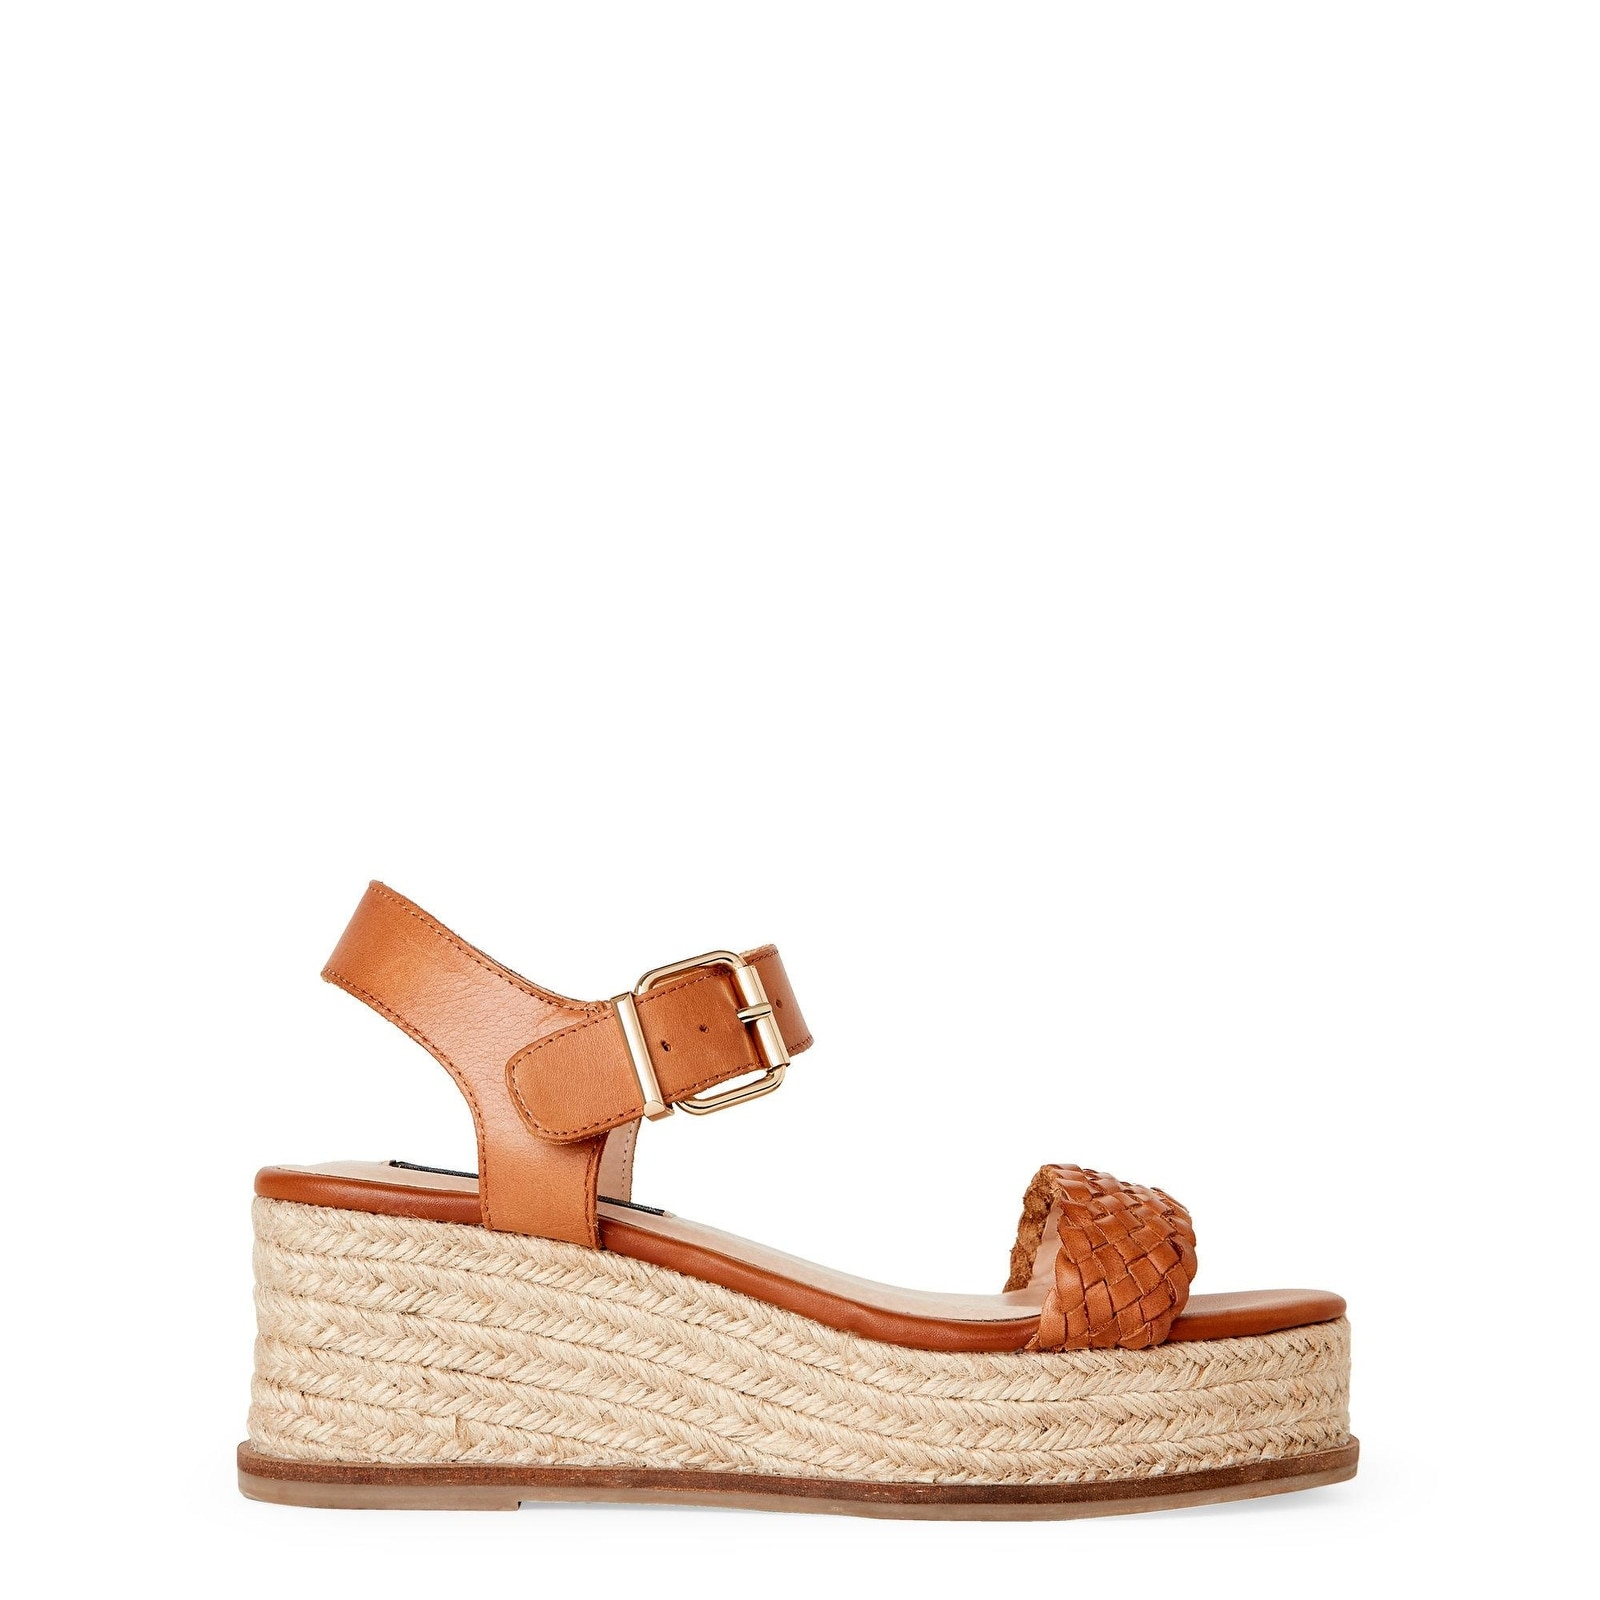 68a9bd17dd7 Shop STEVEN by Steve Madden Womens sabble Leather Open Toe Casual Platform  Sandals - On Sale - Free Shipping Today - Overstock.com - 22319500